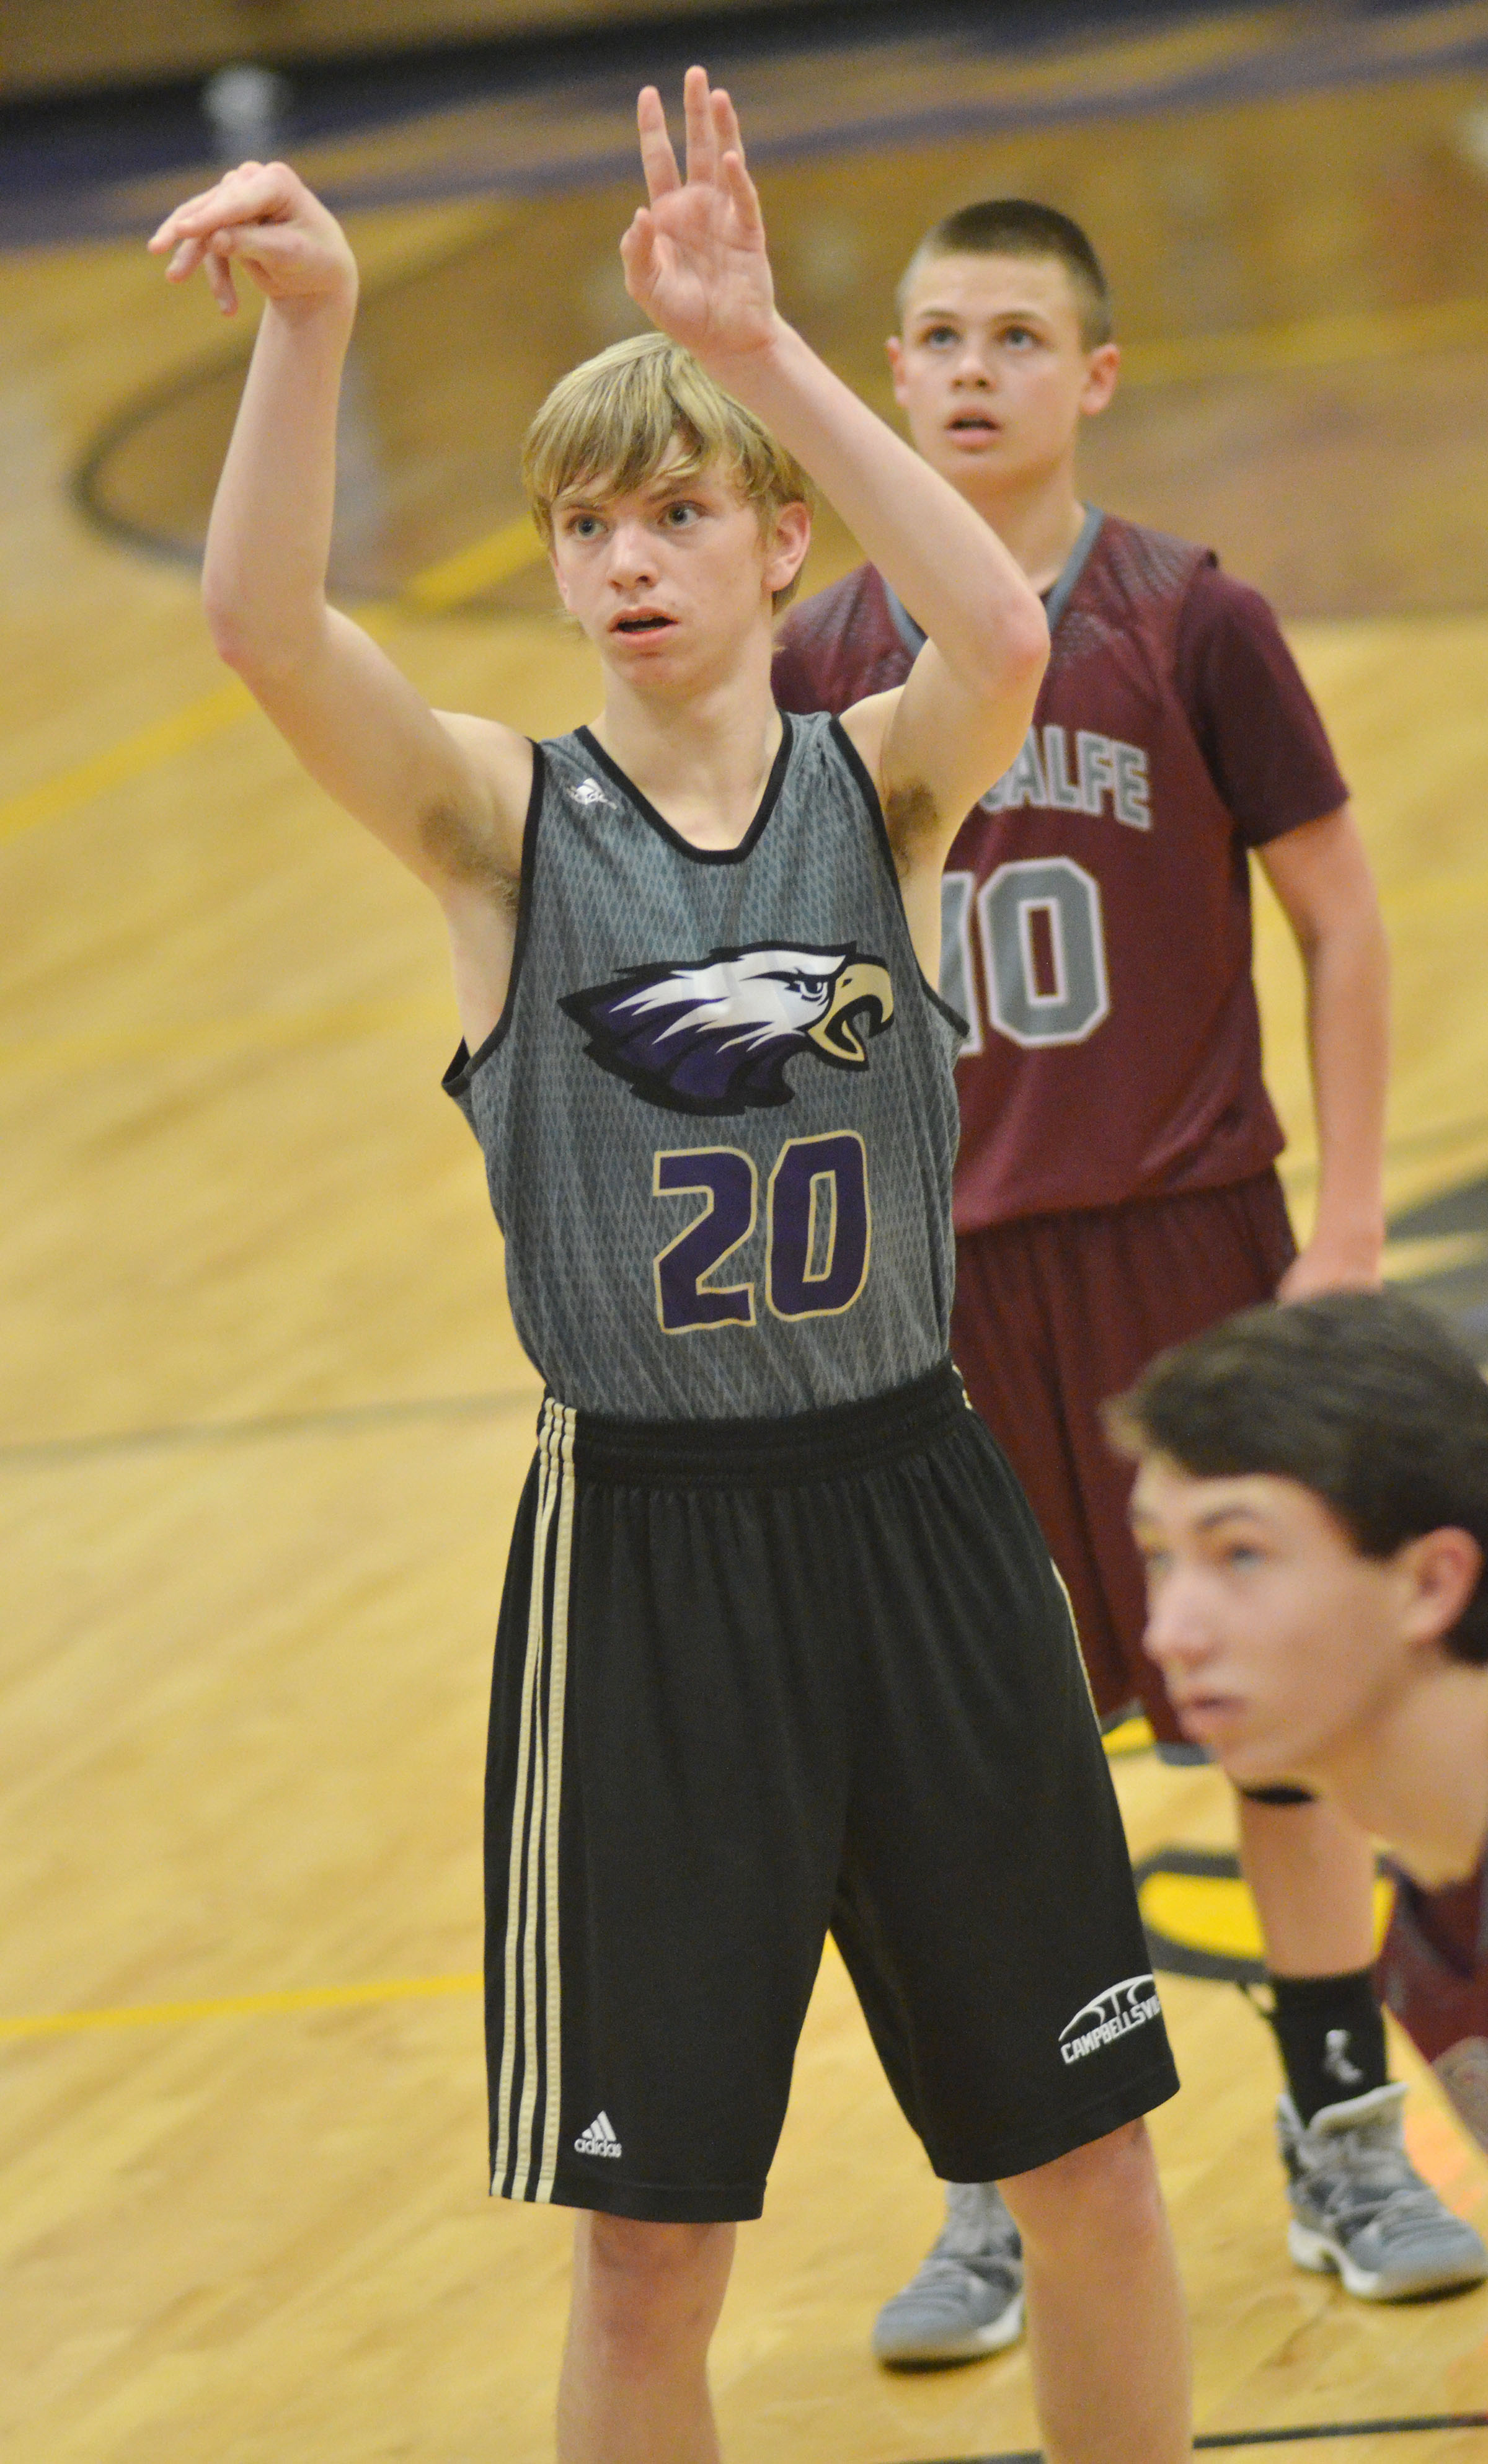 Campbellsville Middle School eighth-grader Arren Hash shoots the ball.